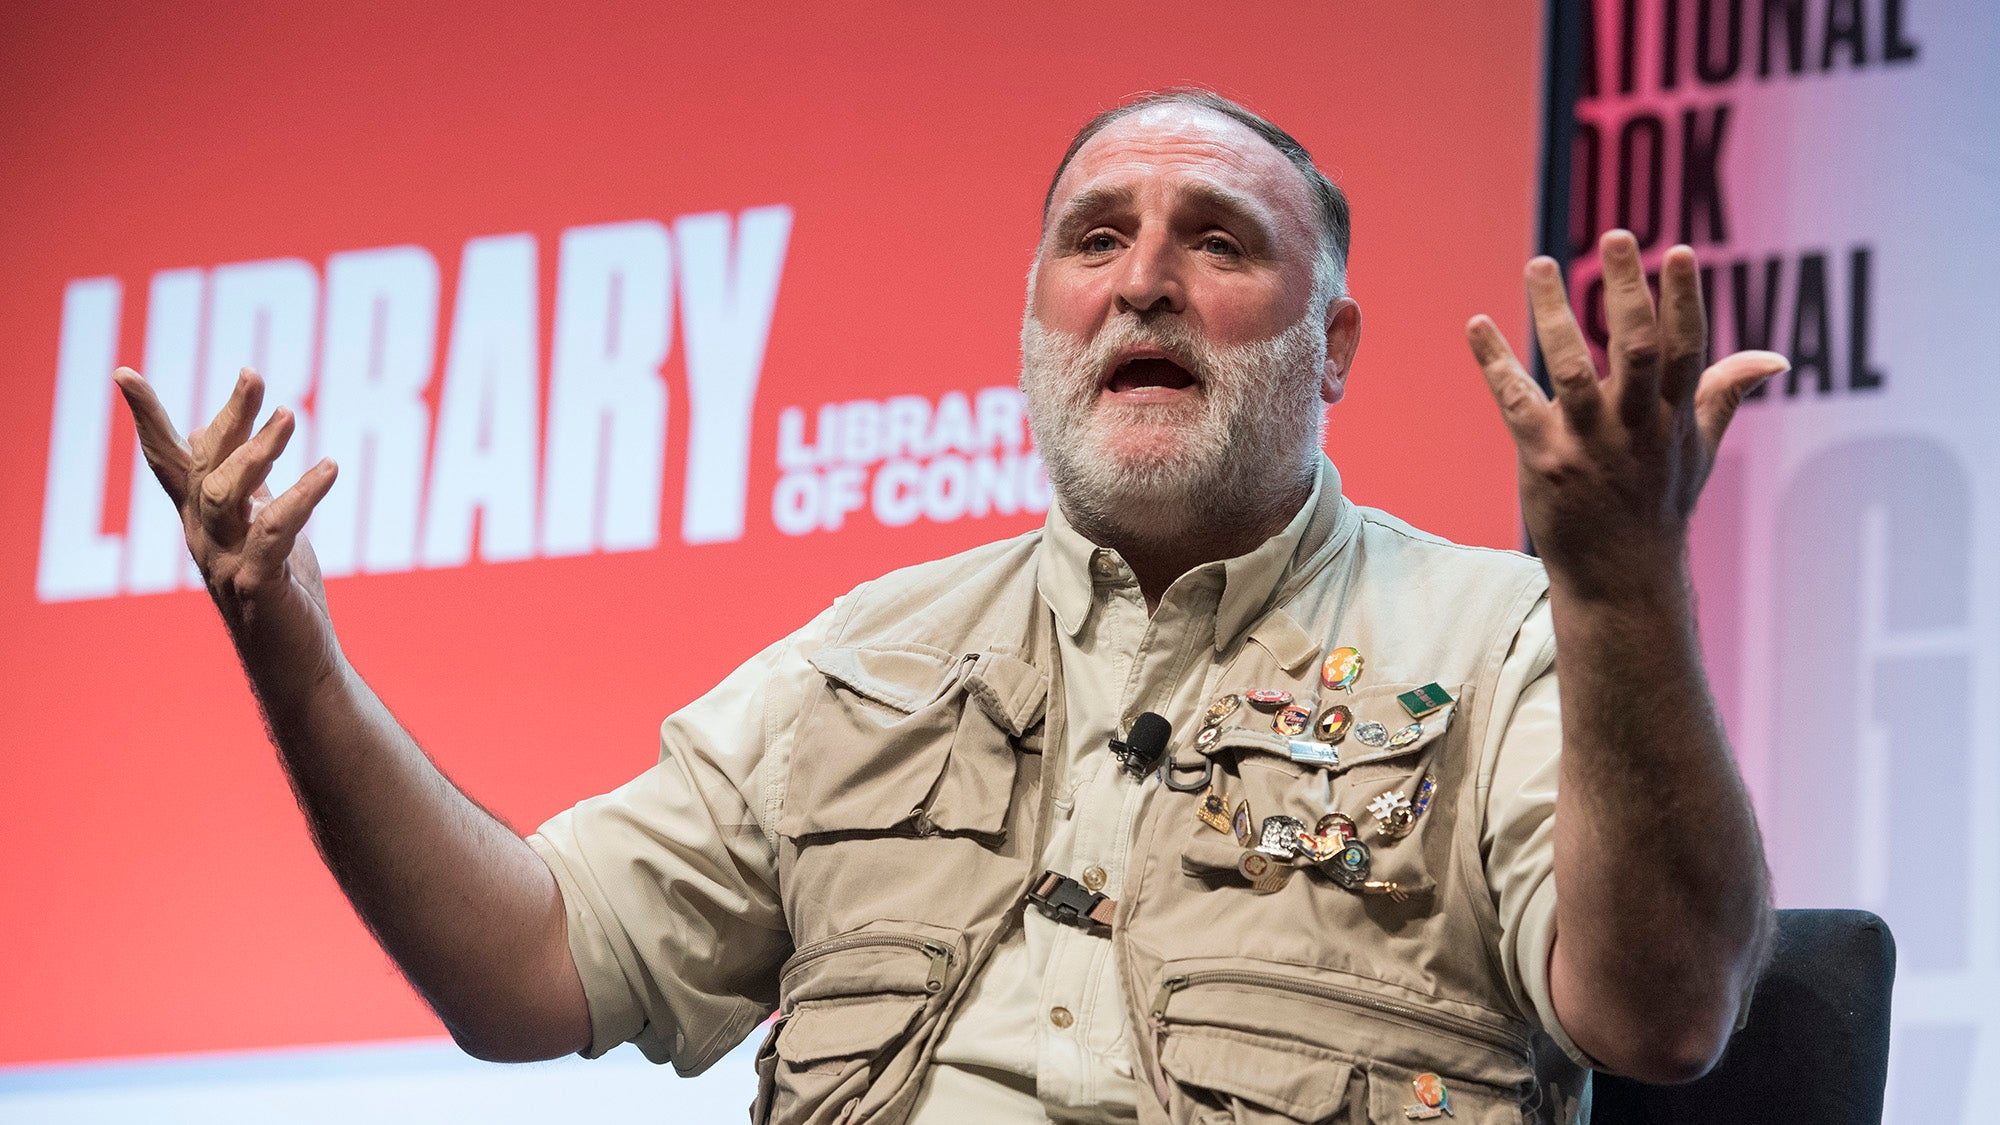 Chef and restaurant owner Jose Andres